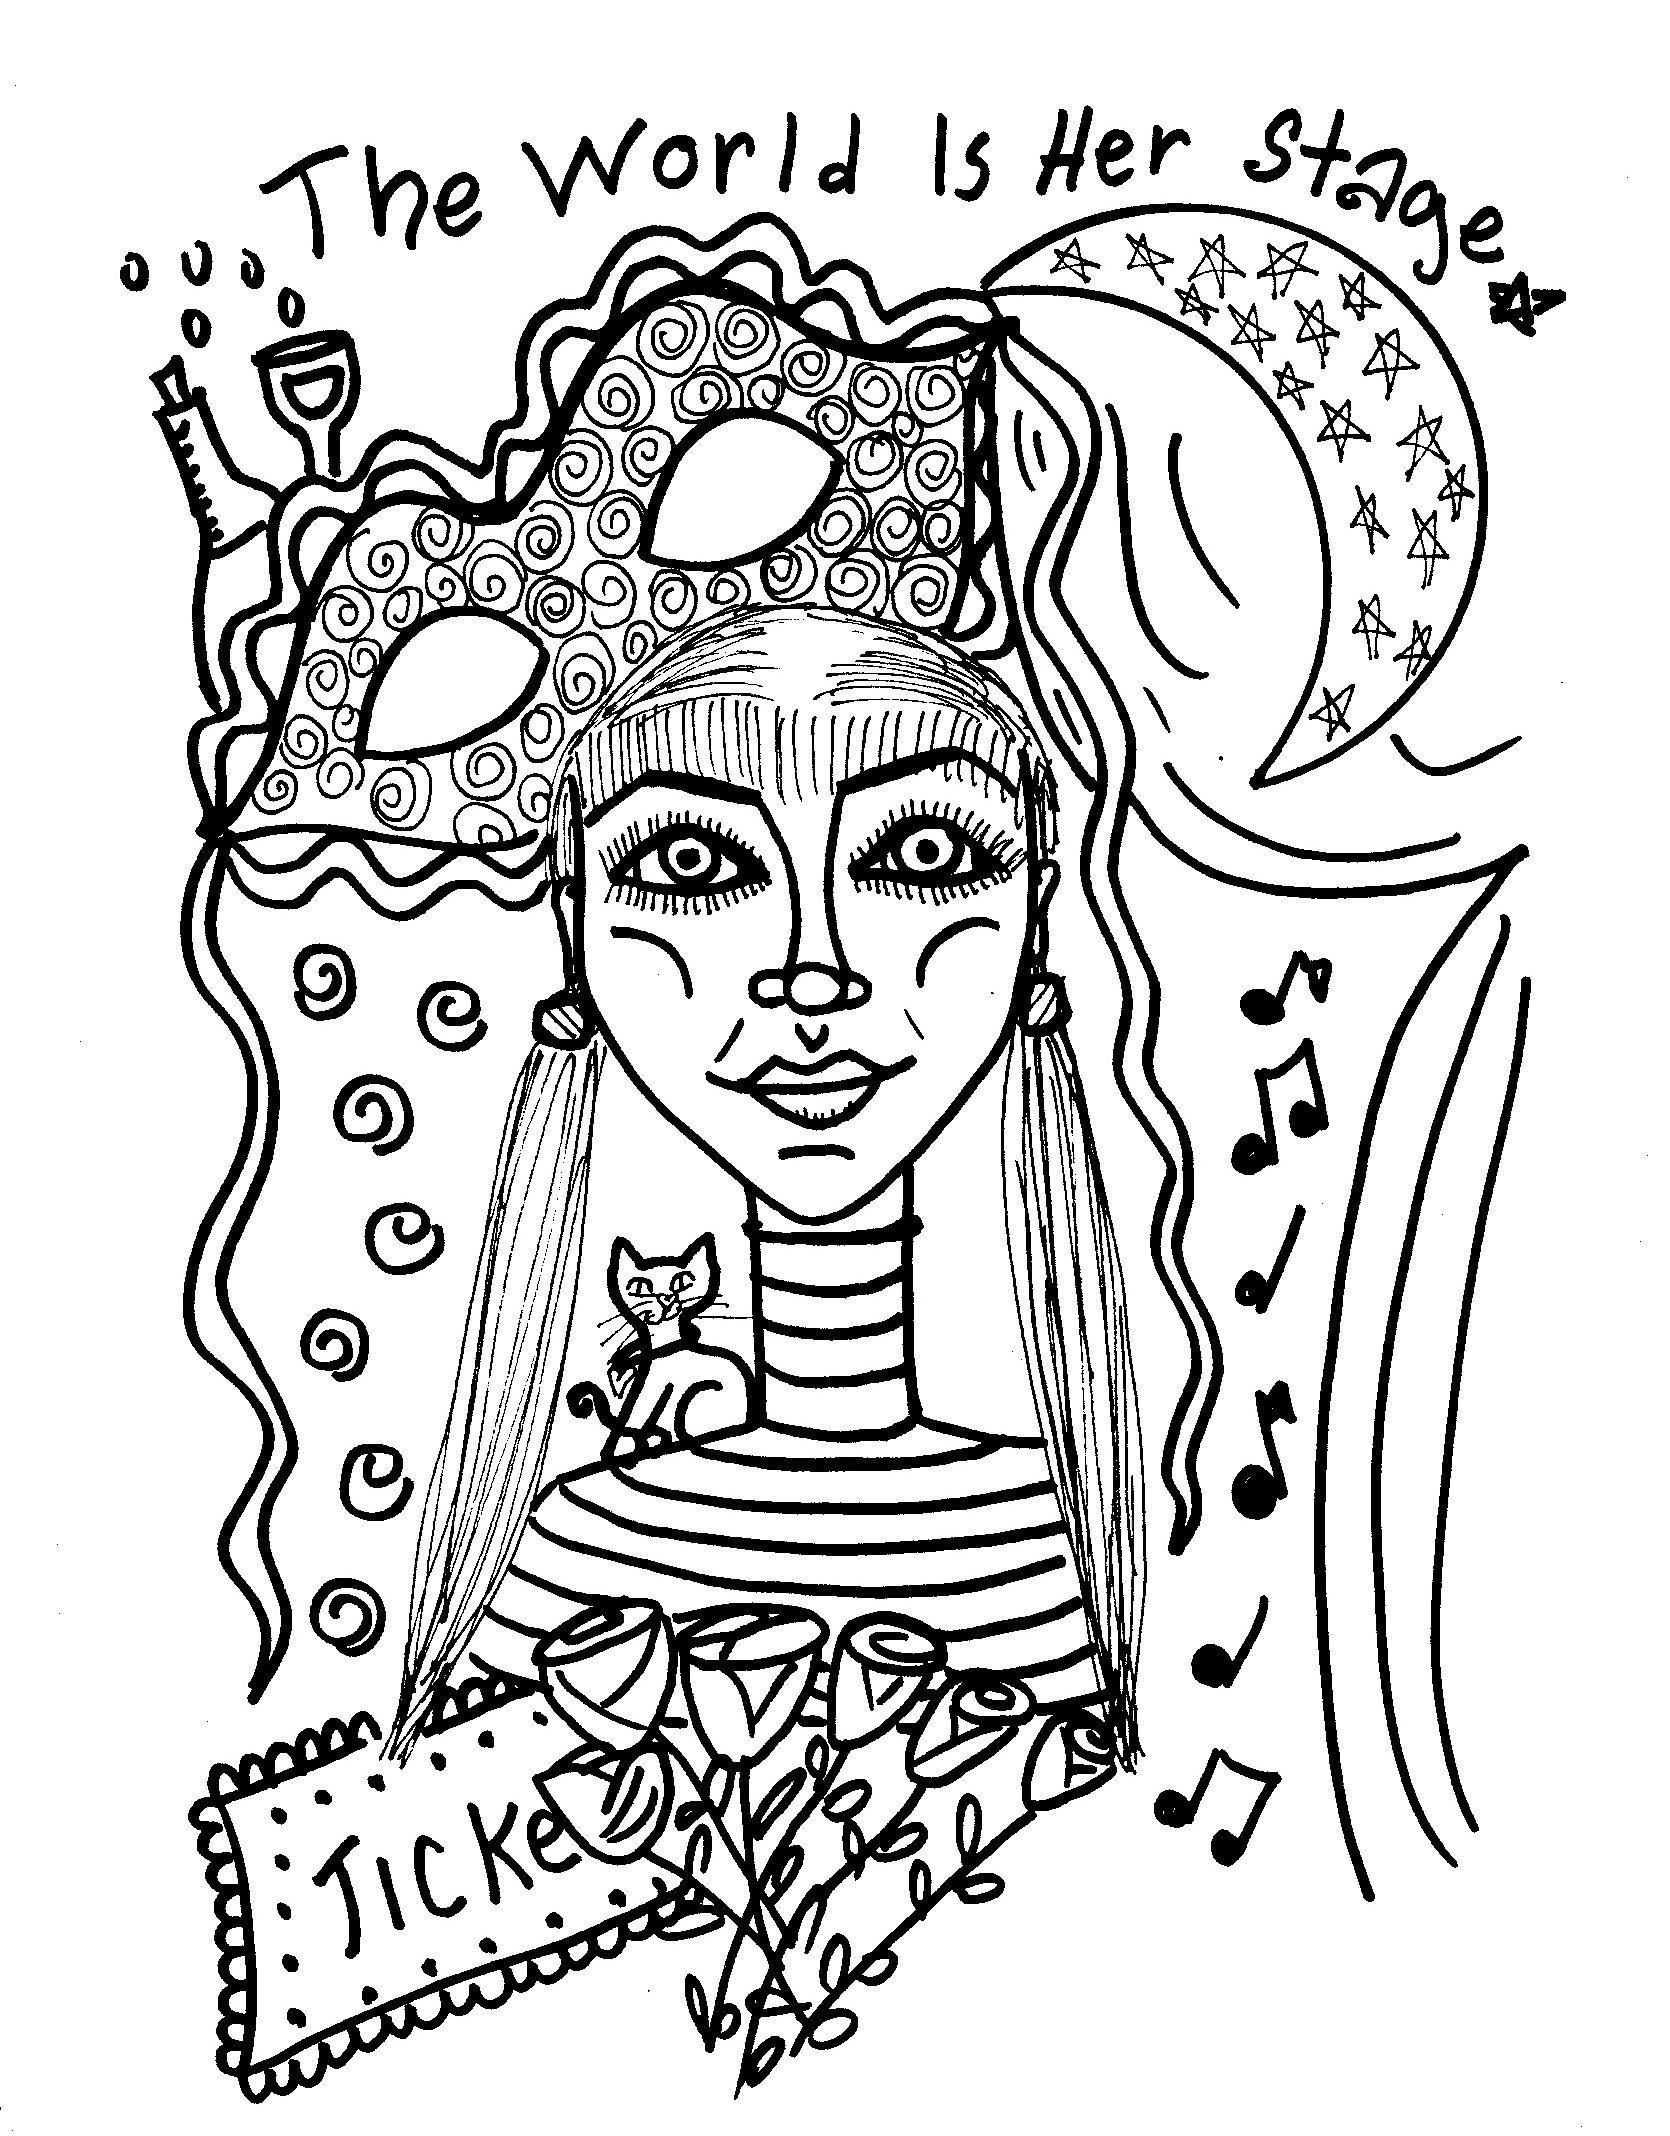 coloring book pages…design your own coloring book | iColor "|1670|2136|?|en|2|fc9bbb1dfa52ff8148d9cd7e251d697b|False|UNLIKELY|0.29170987010002136